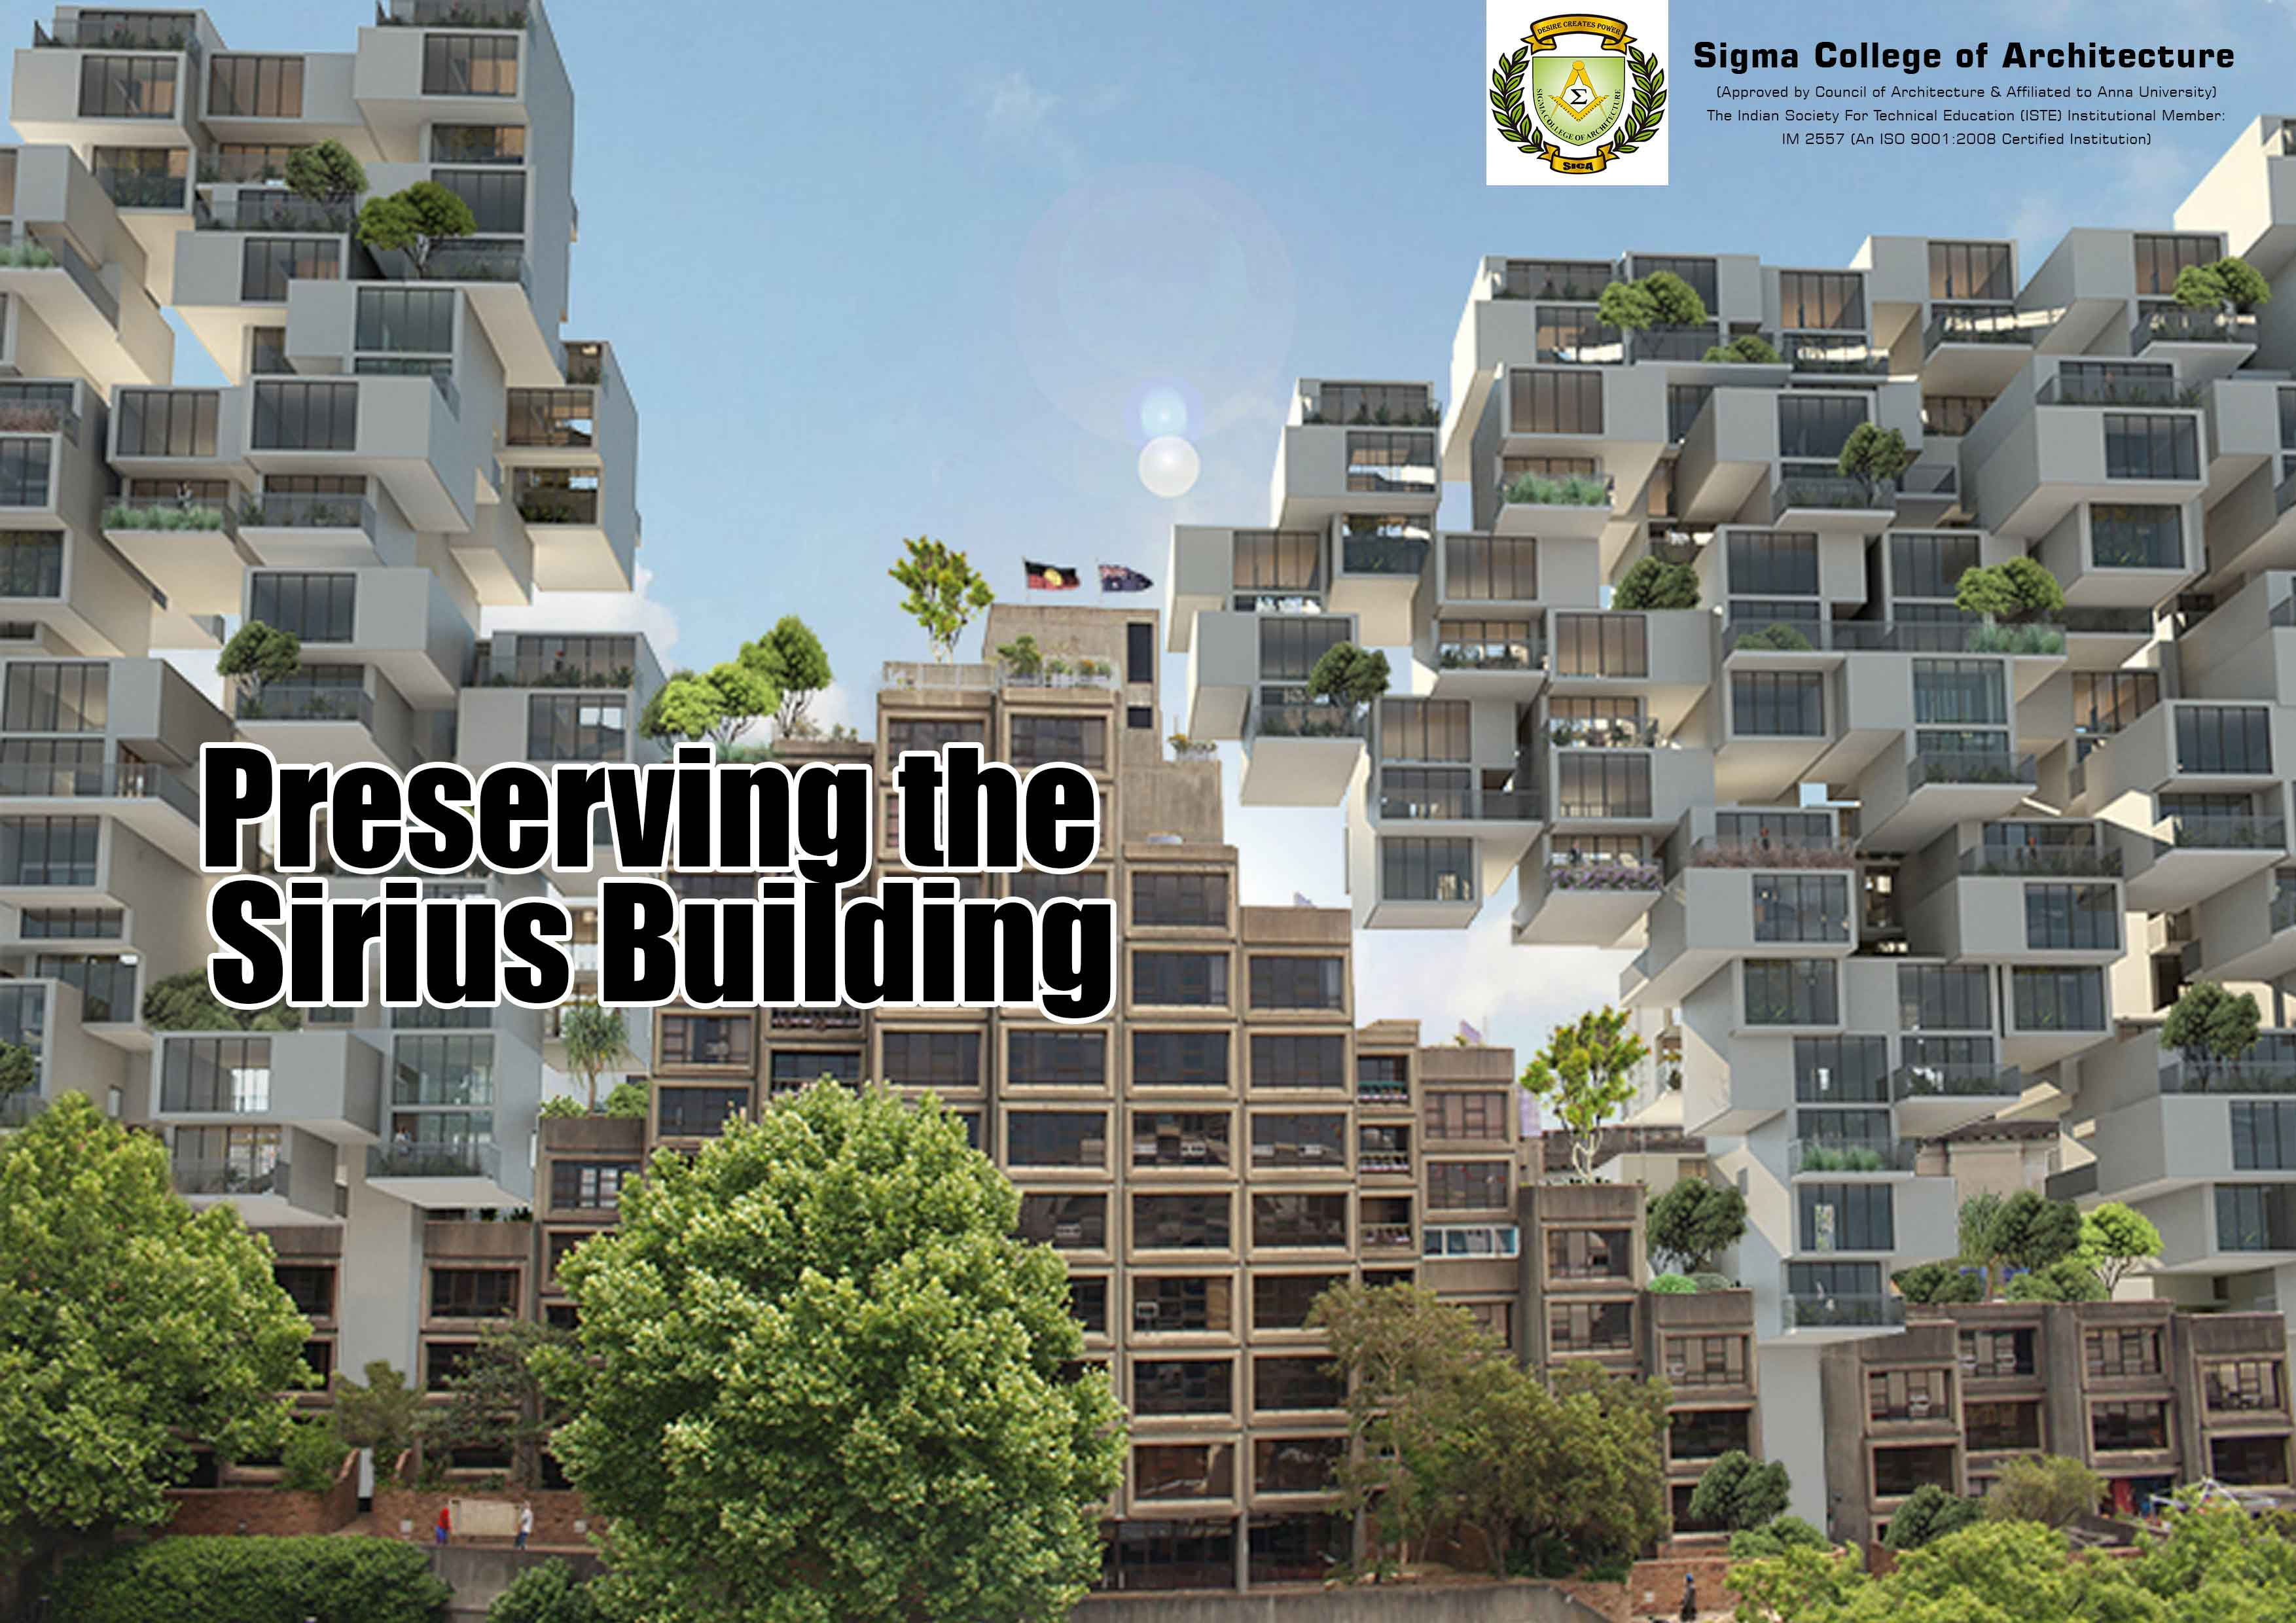 Preserving the Sirius Building